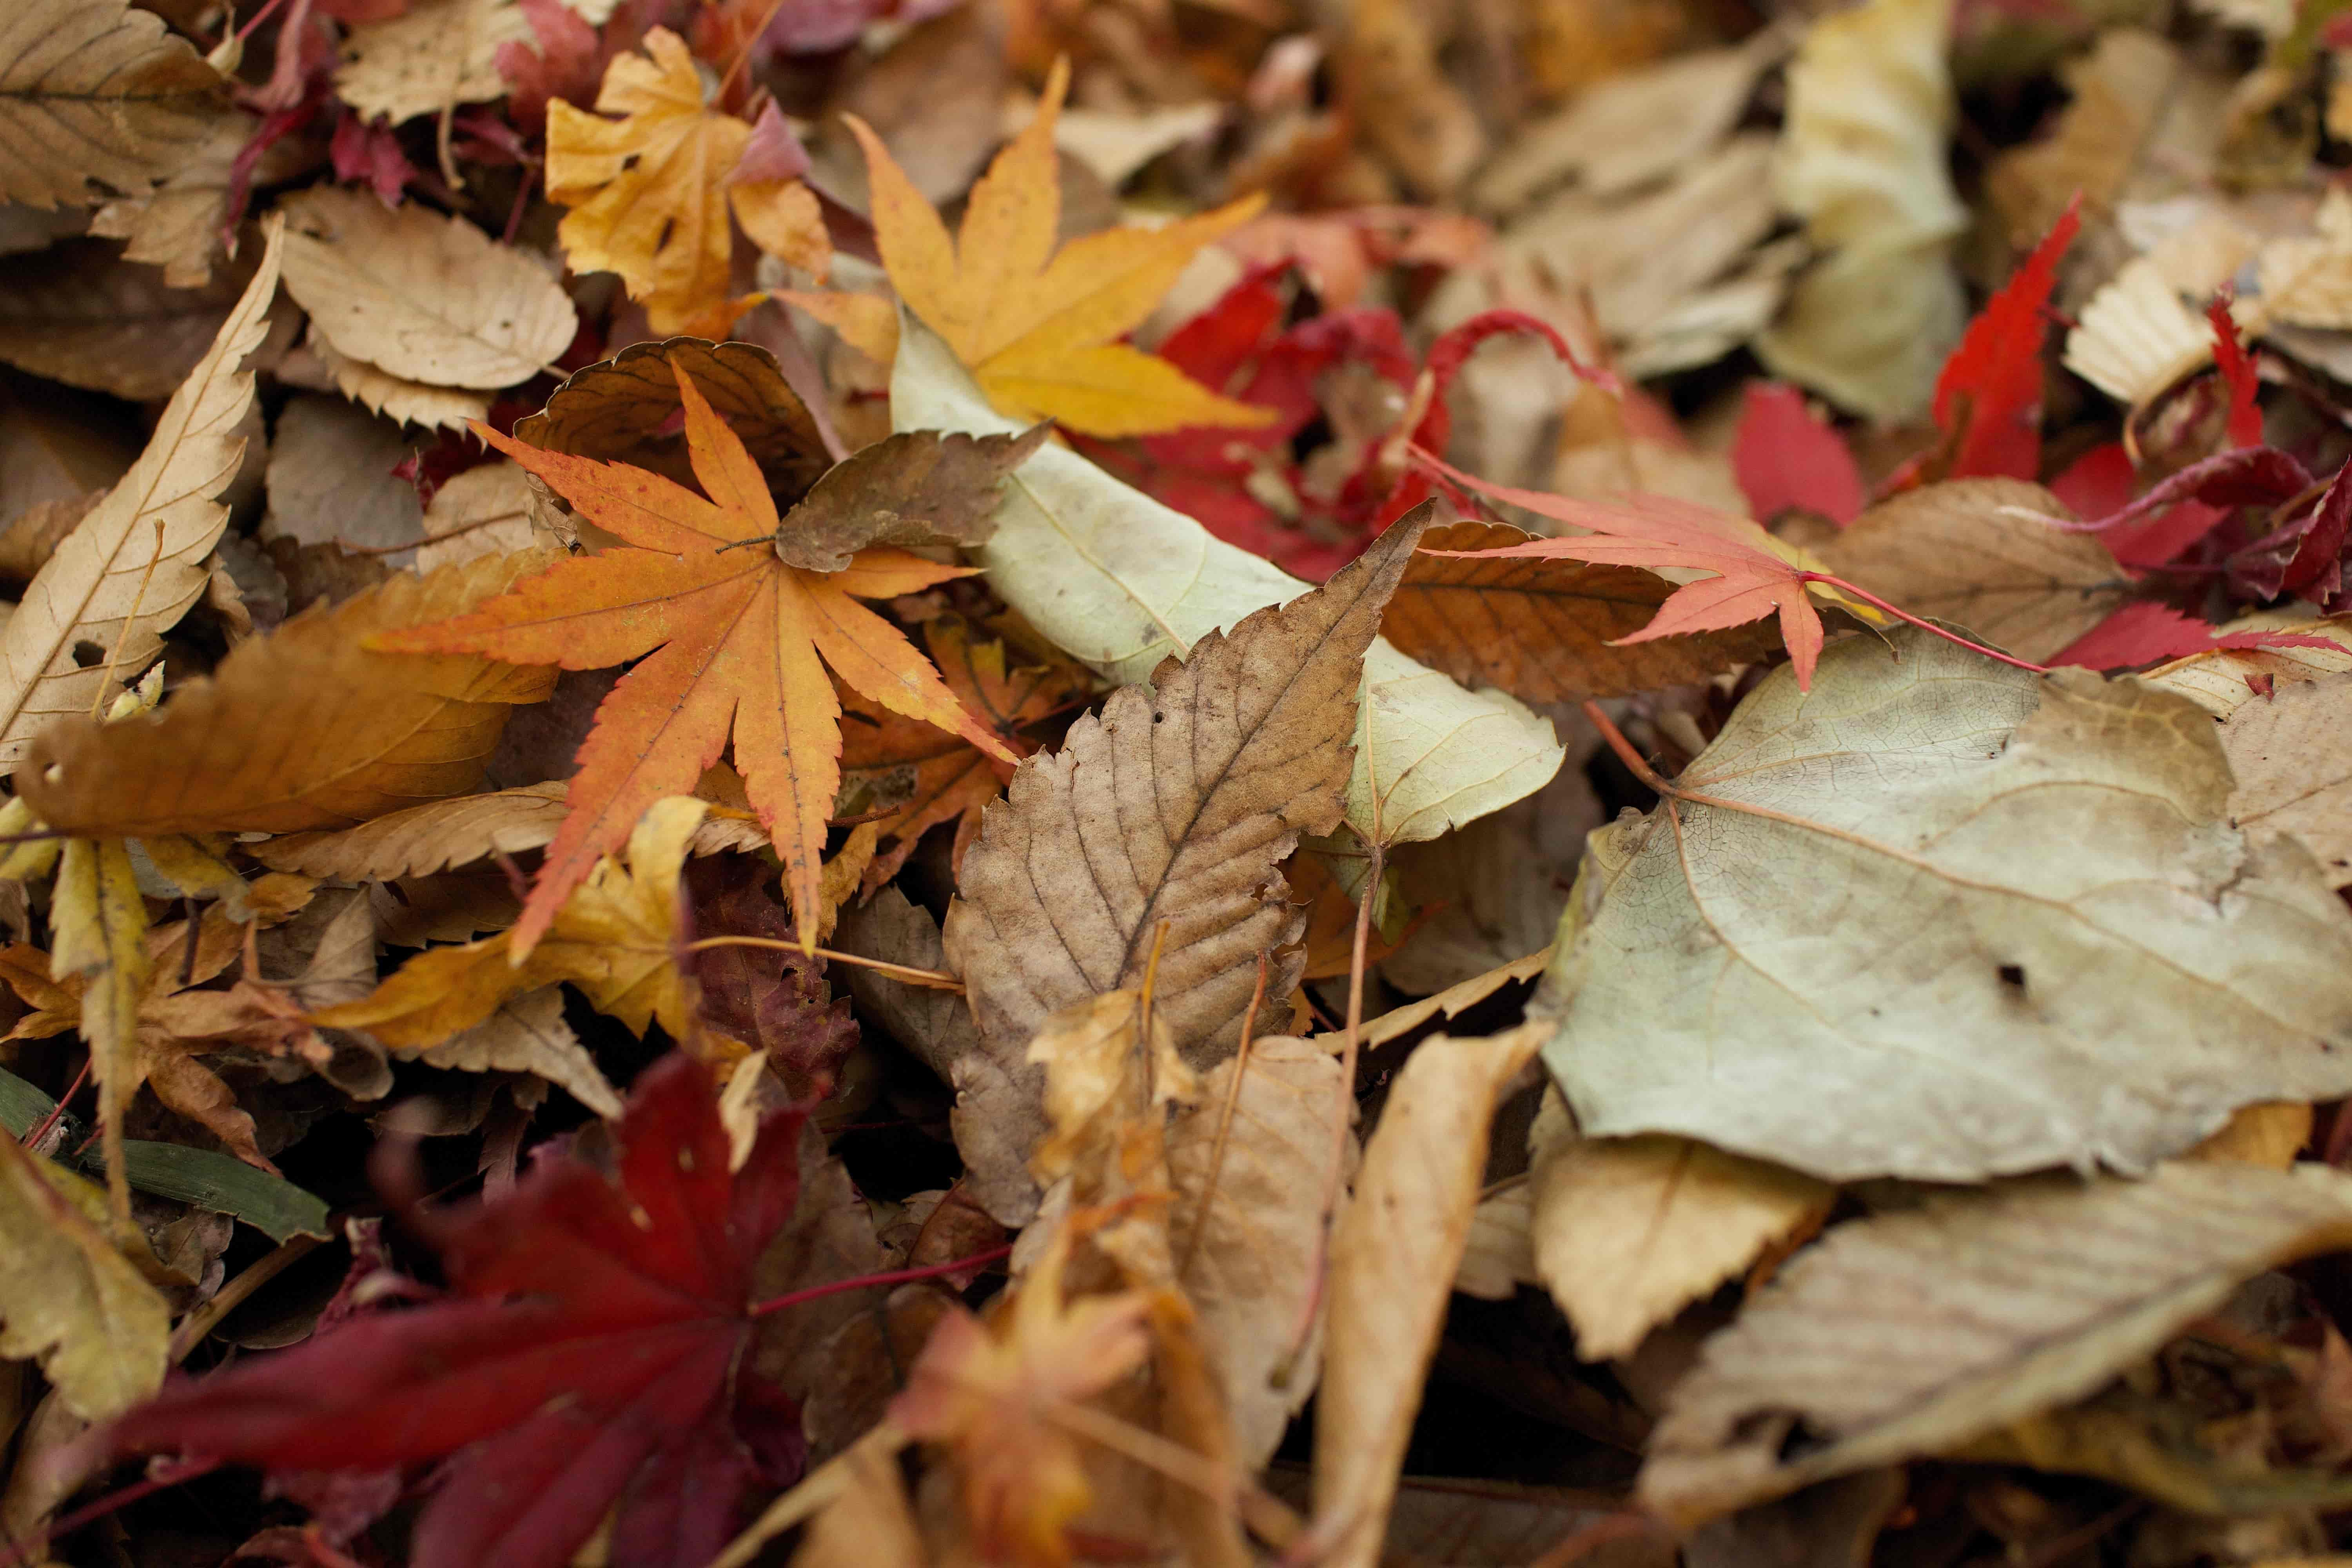 How to Make Compost From Fall Leaves